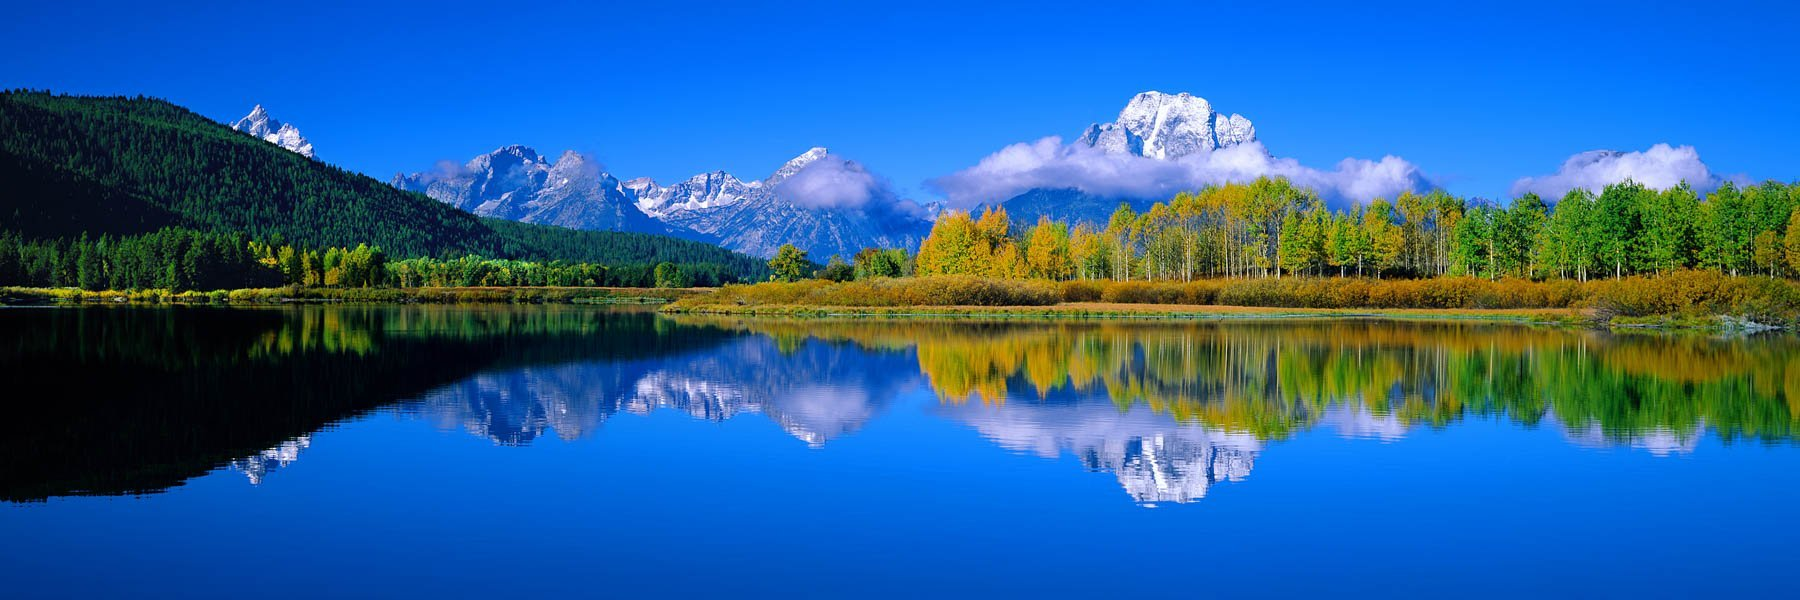 Snow capped peaks of the Grand Tetons, reflected in Snake River, Wyoming, USA.